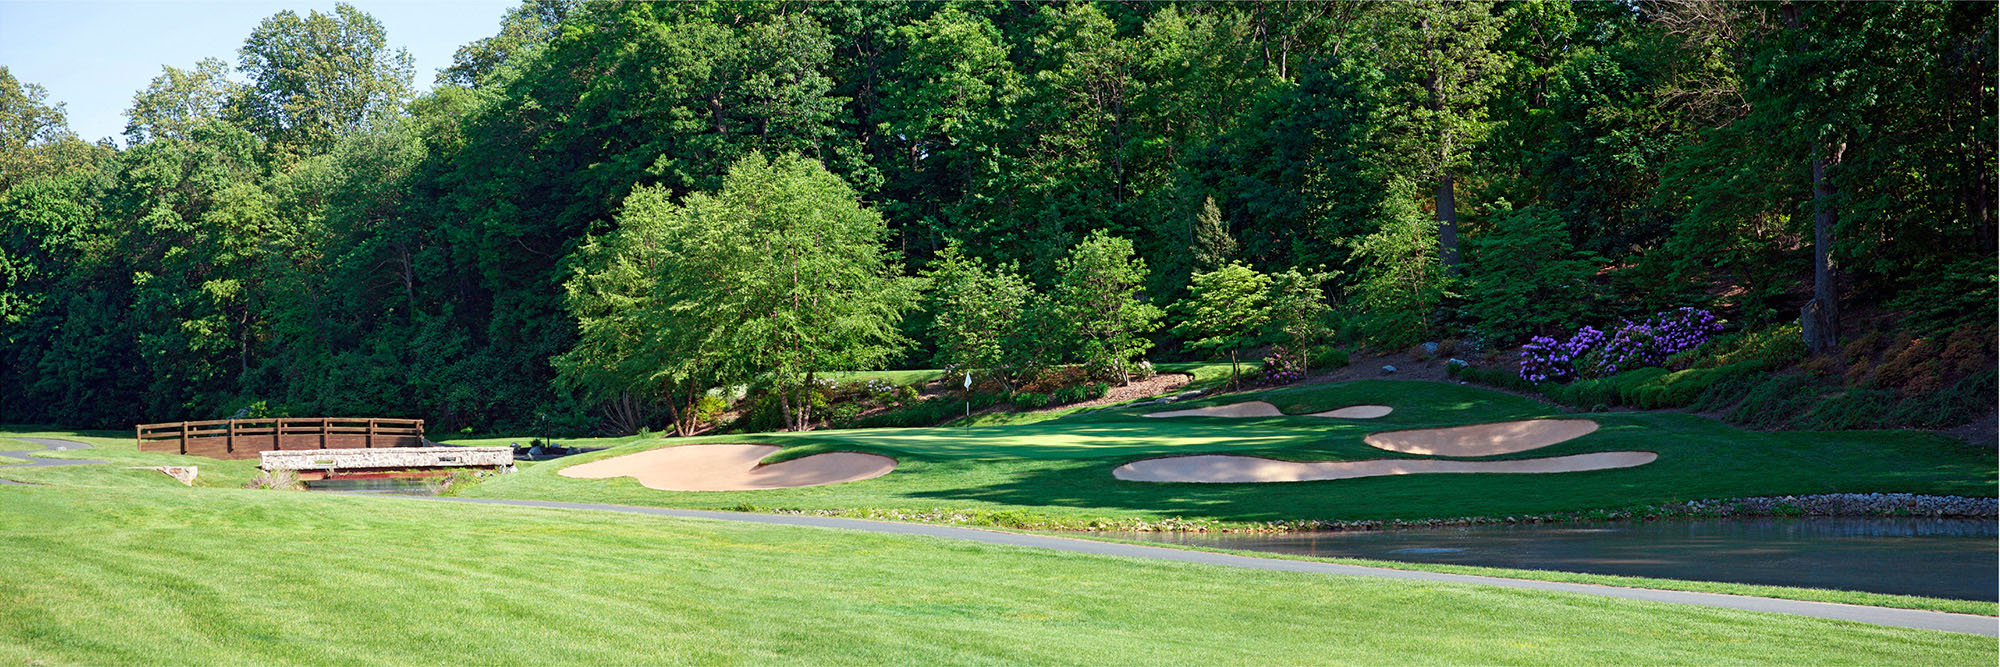 Golf Course Image - Woodcrest No. 3